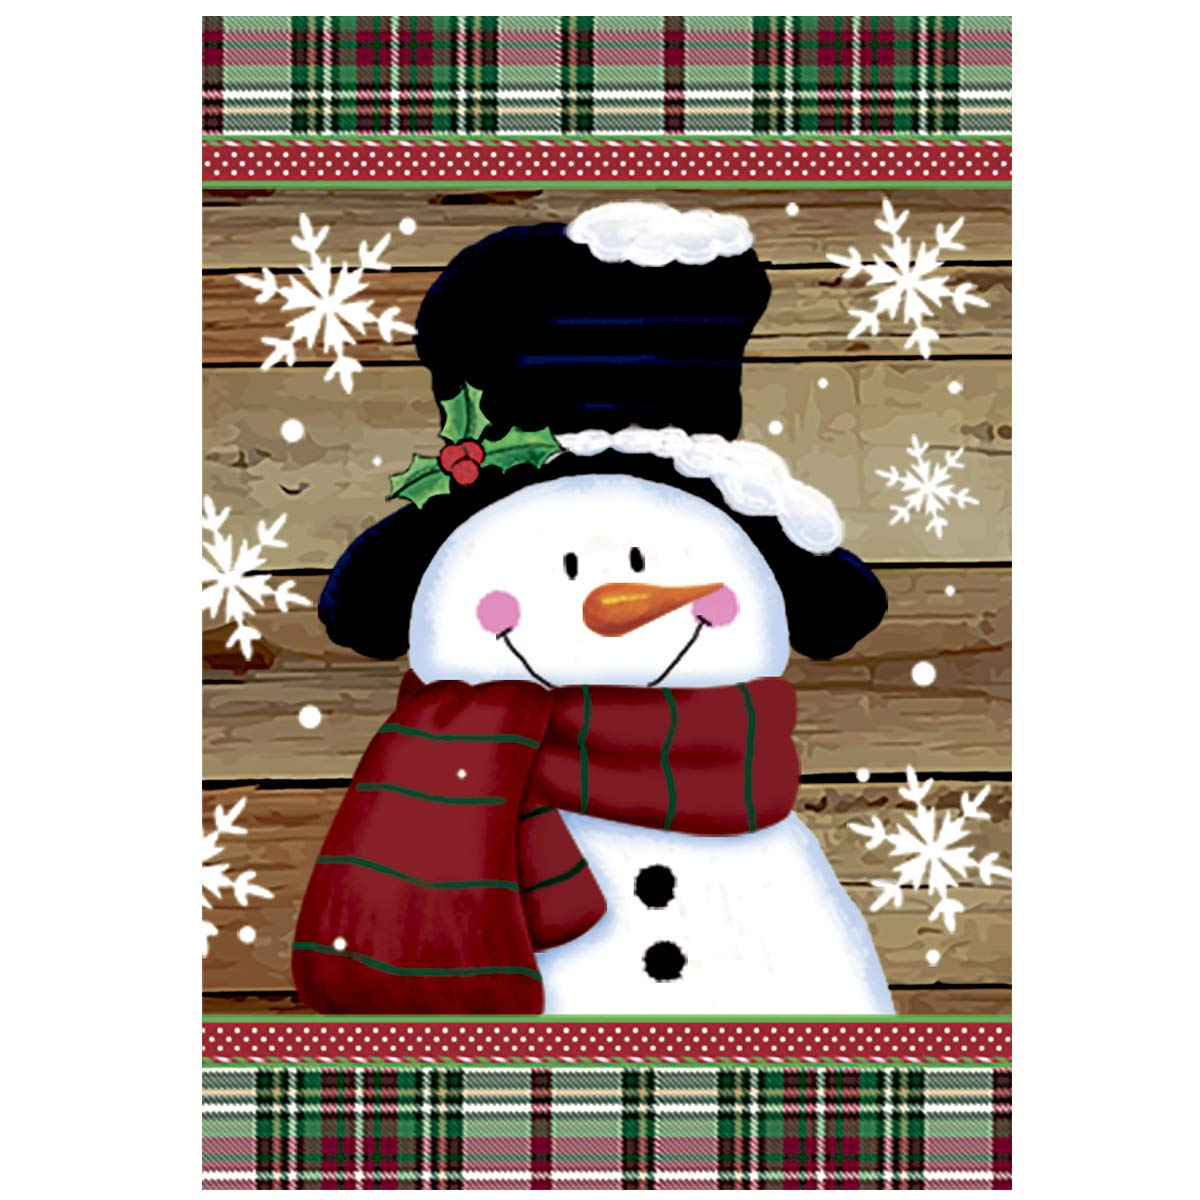 Morigins Smile Snowman with Red Scarf Outdoor Yard Flag Decorative Snowflake Winter House Flag 28x40 Inch